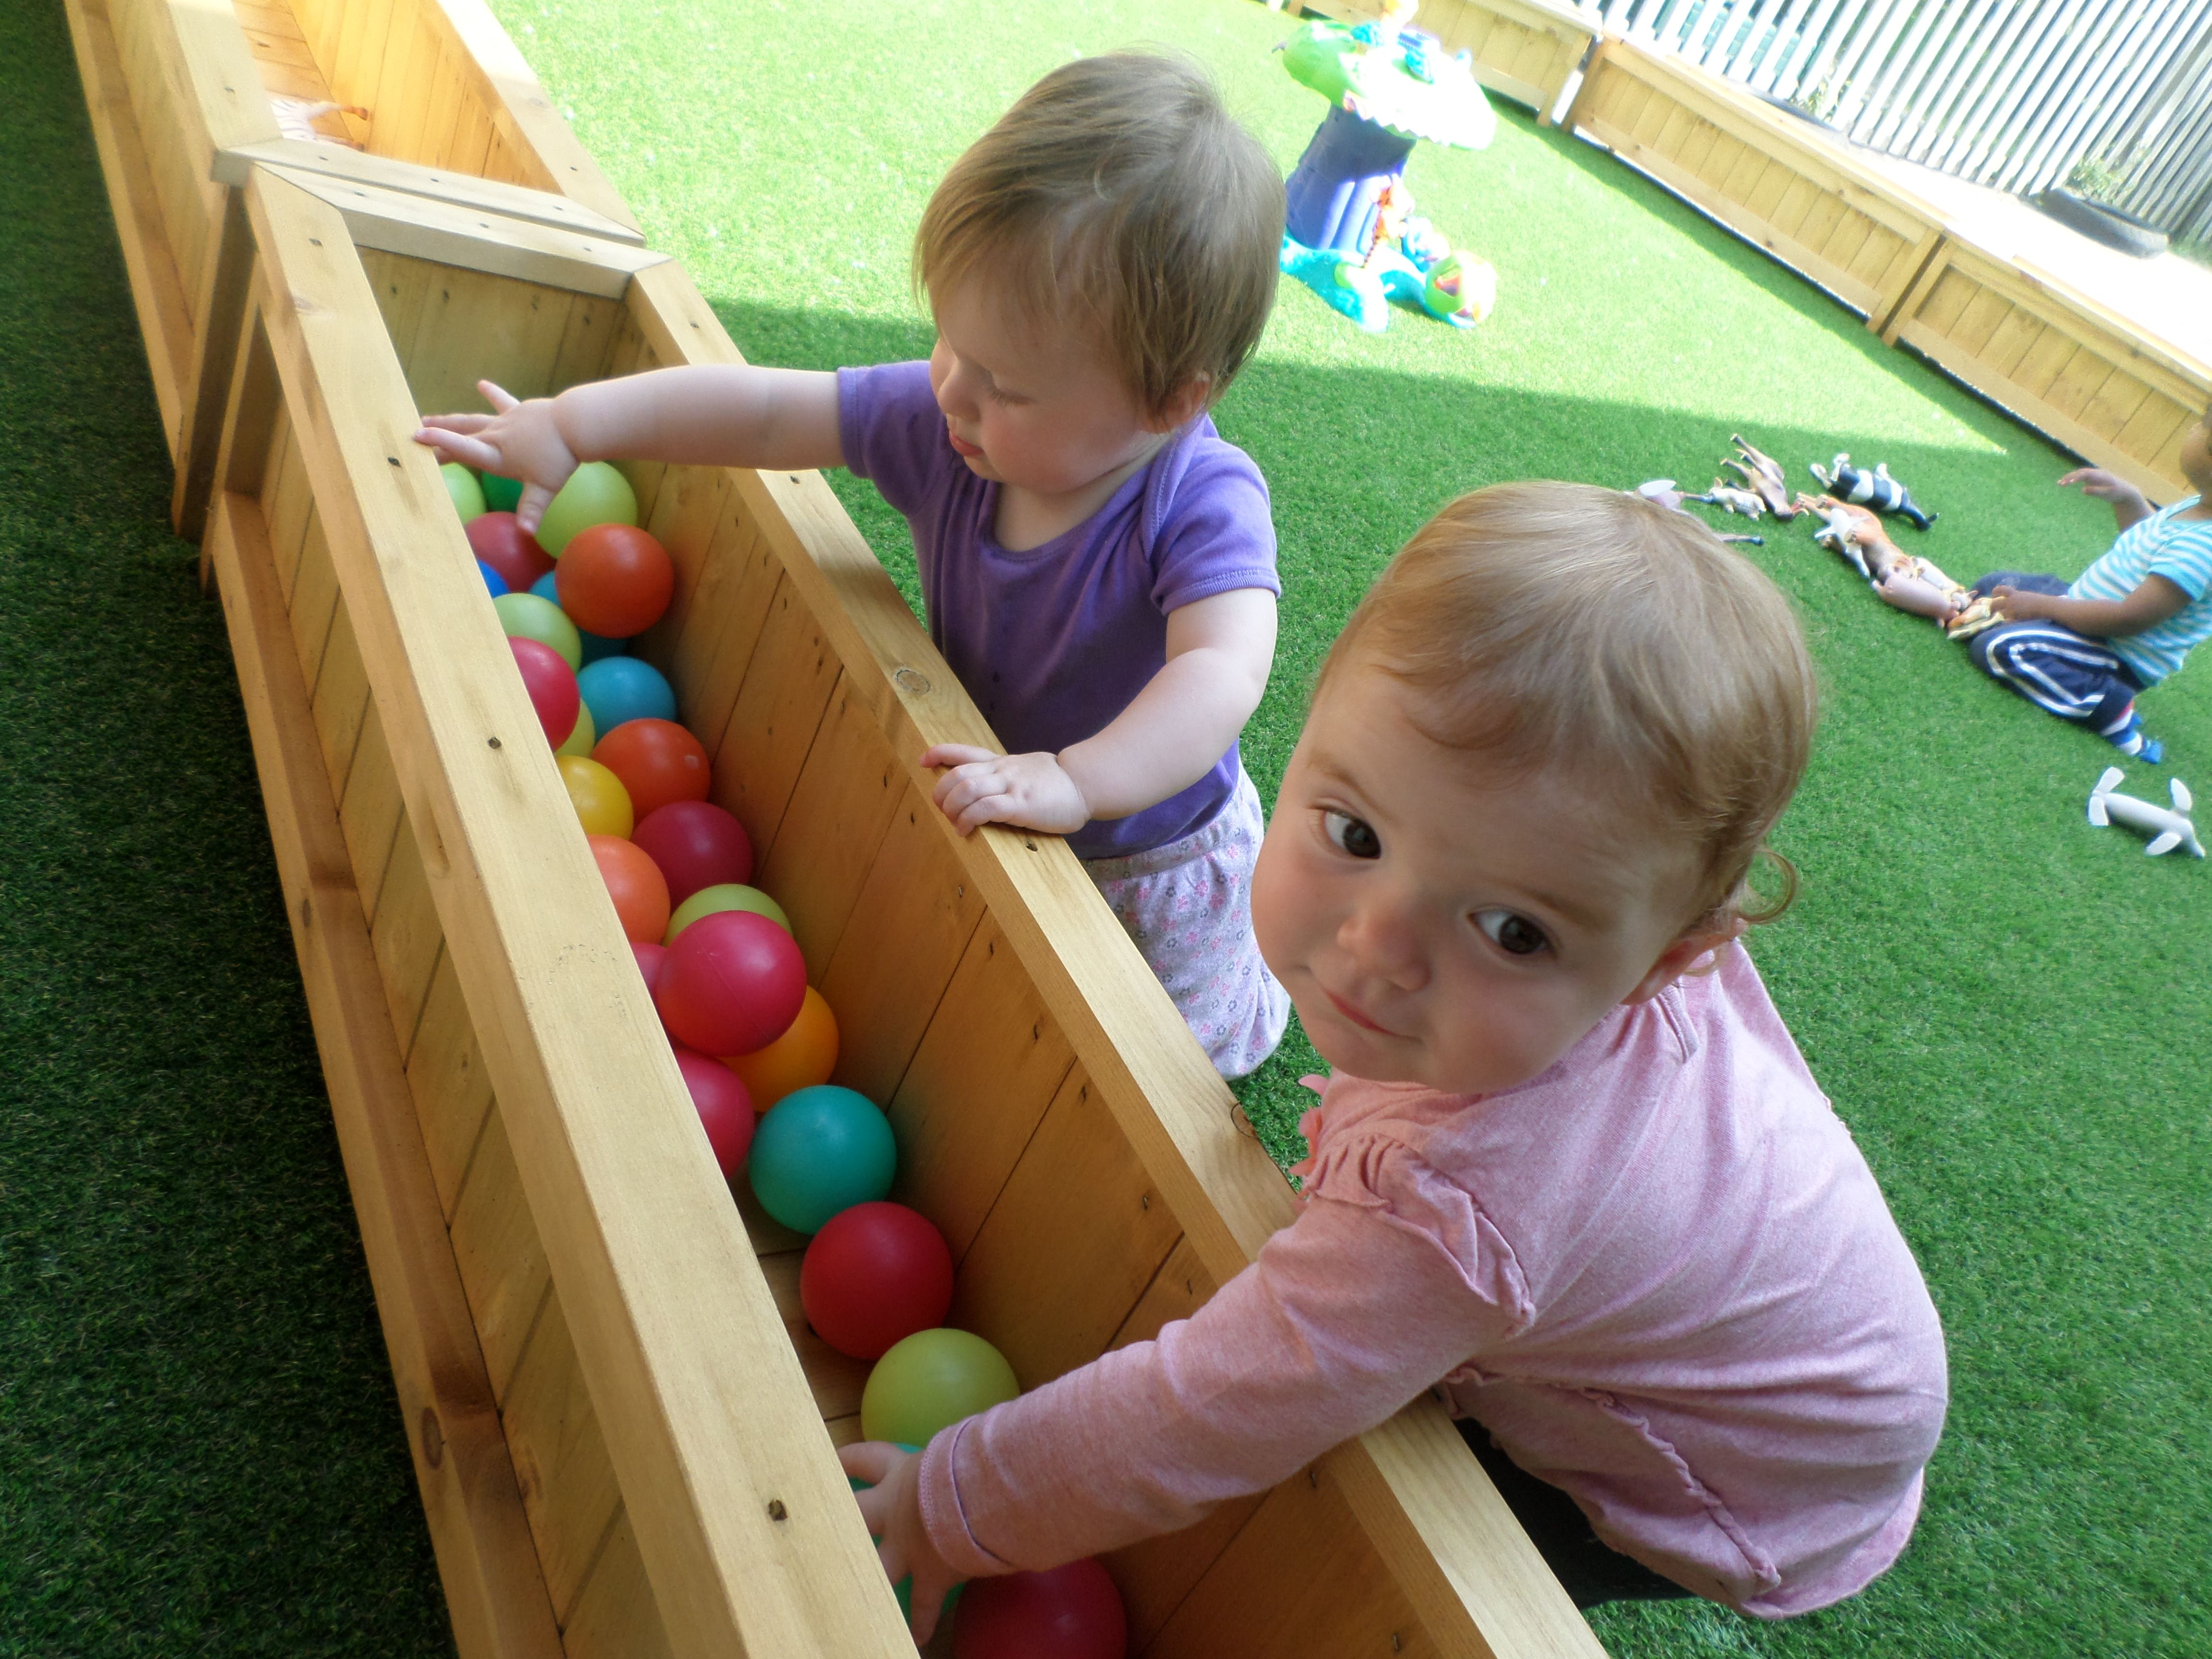 soft astro turf and low level games make the babies area a